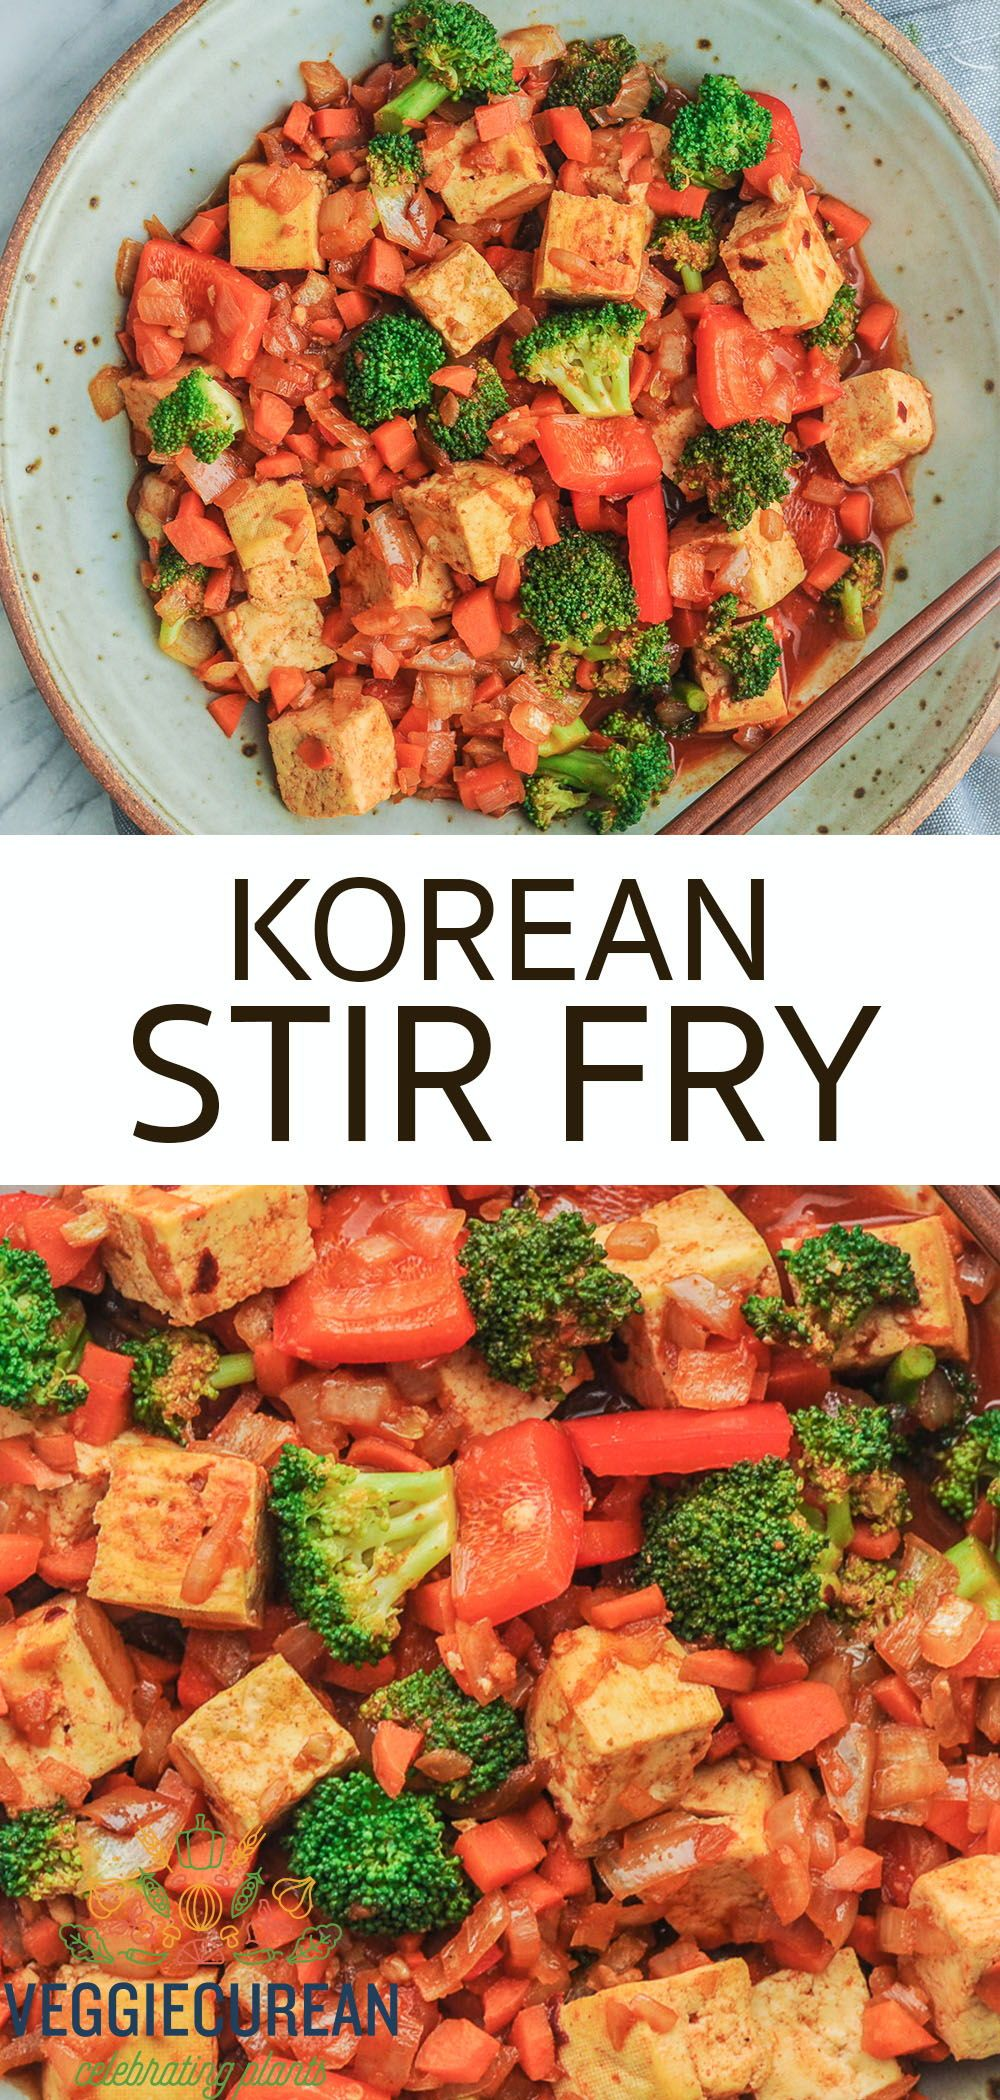 This Korean Stir Fry is protein packed with tofu, loaded with veggies, and smothered in Gochujang sauce, a Korean red pepper and rice paste. This dish is ready in just 20 minutes - perfect for a quick weeknight family meal! #koreanfood #vegan #plantbased #dinner #healthy